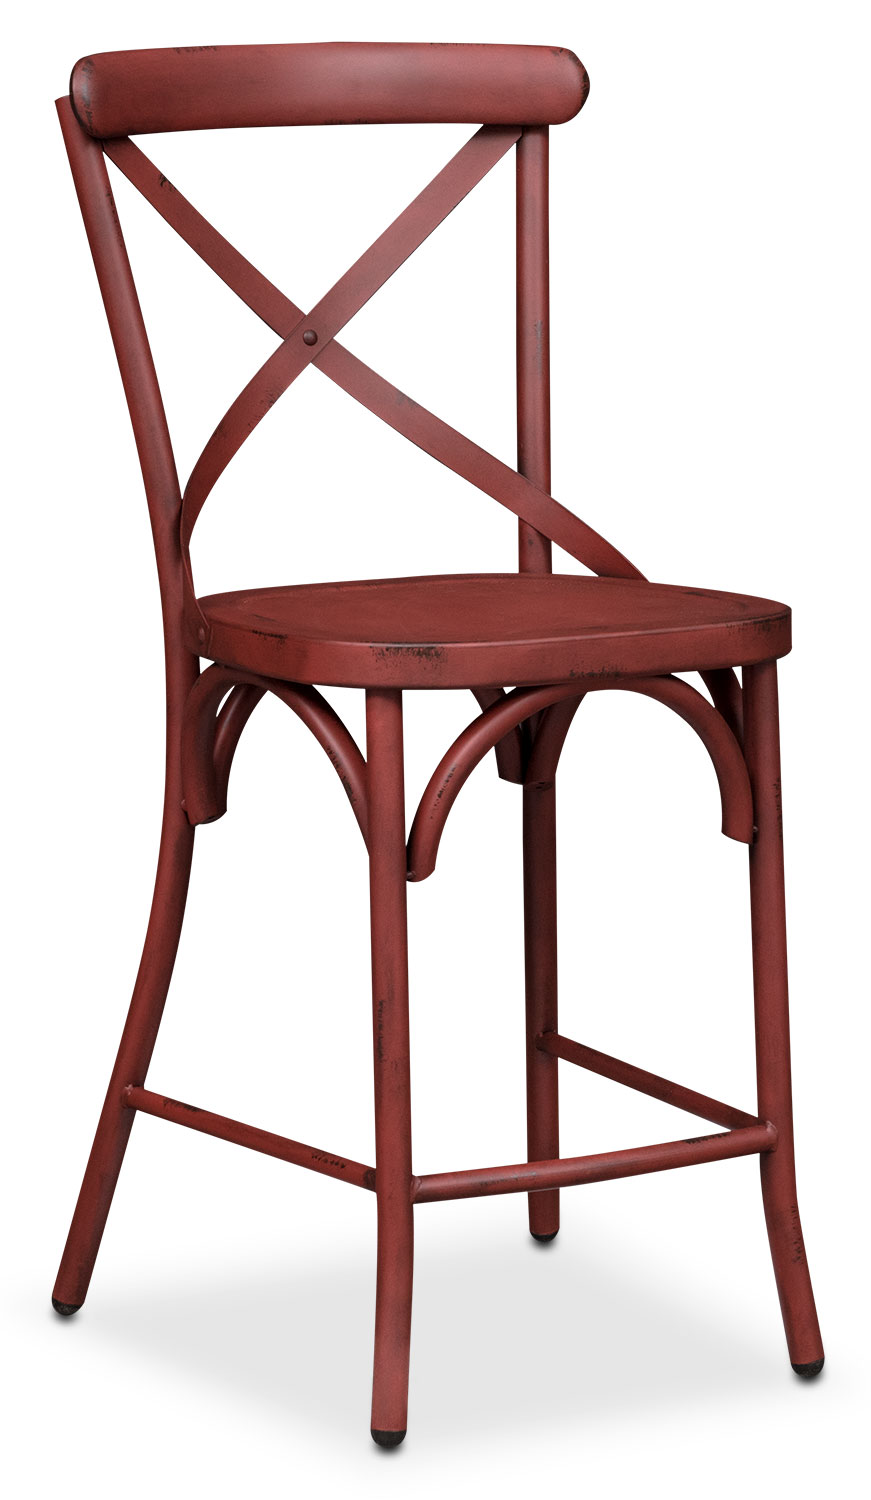 Dining Room Furniture - Saxon X-Back Counter-Height Stool - Red